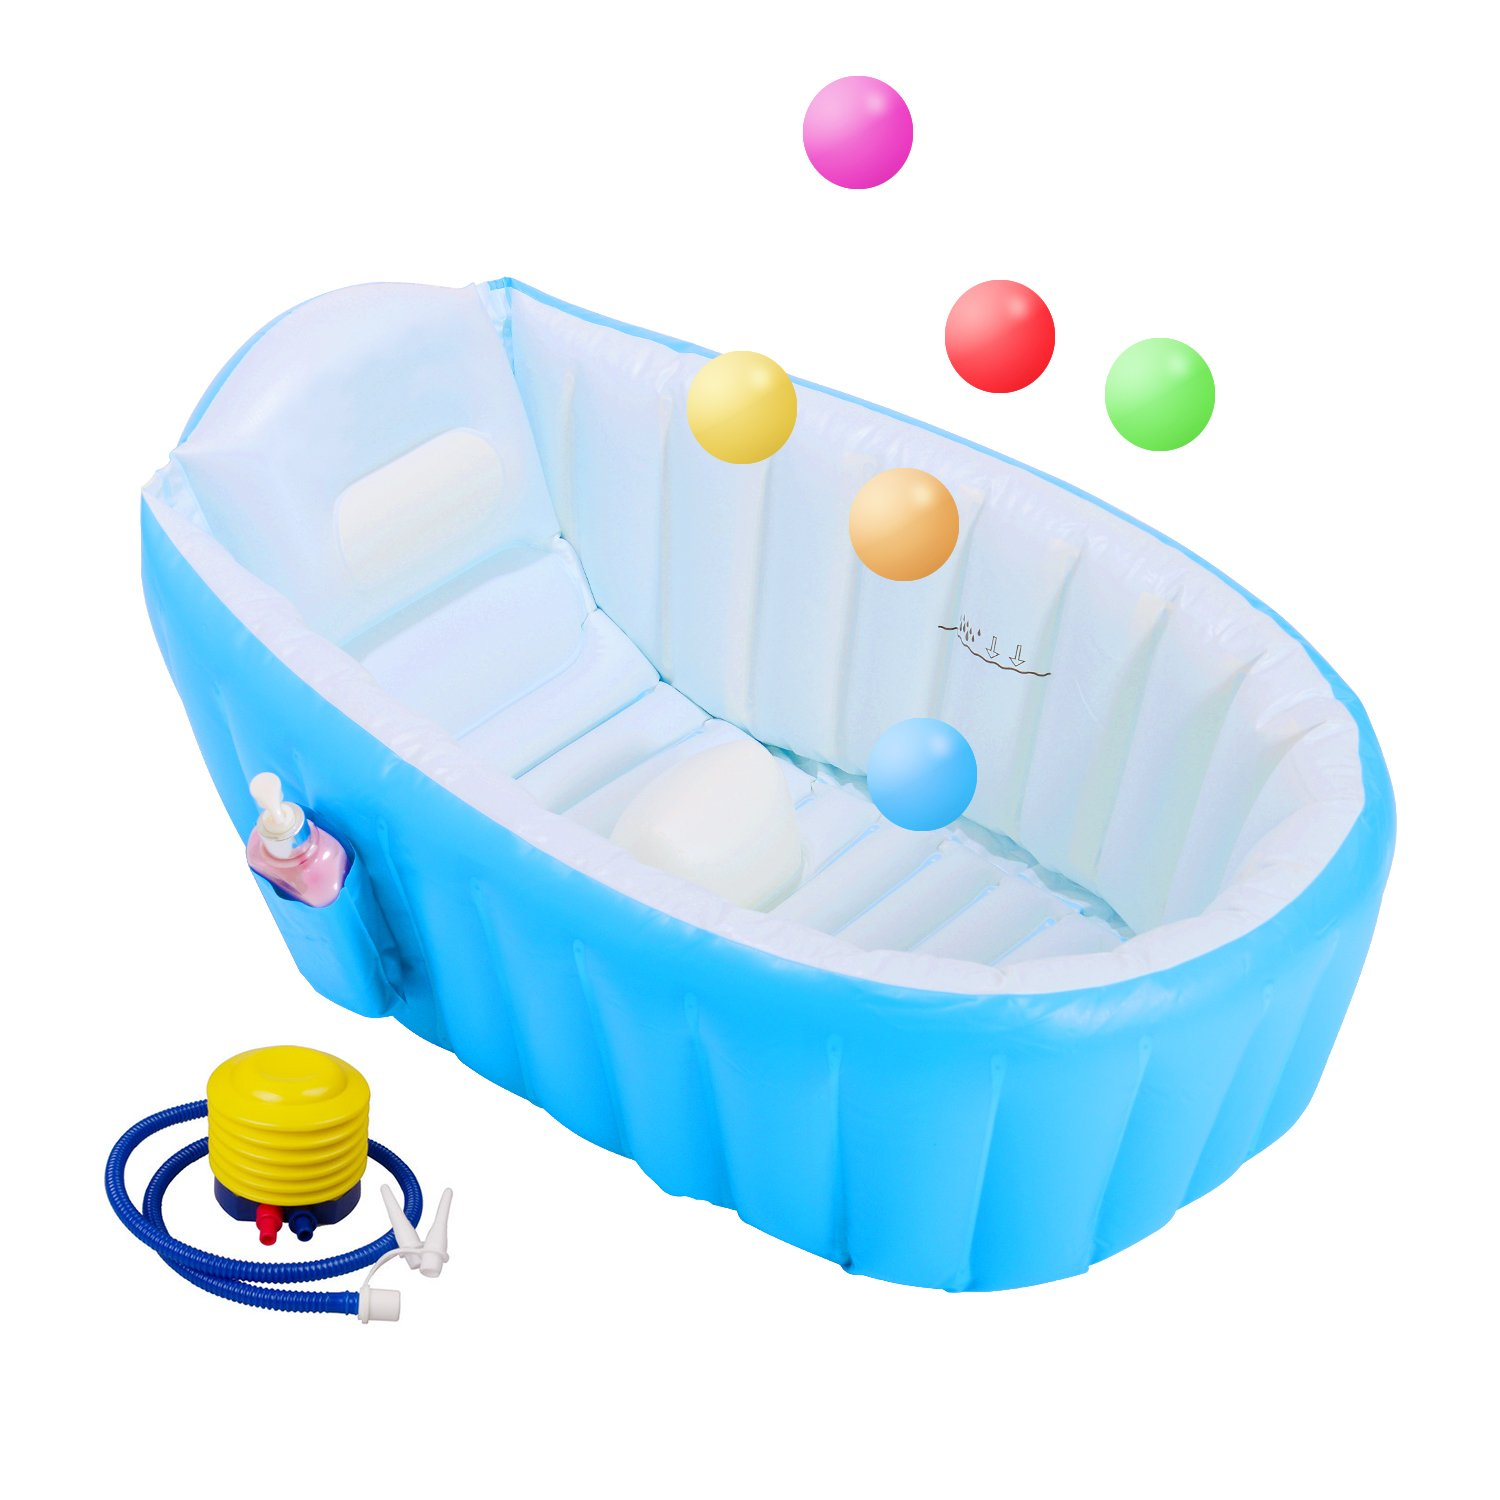 Biubee Baby Inflatable Bathtub - Air Bath Basin with Inflator Pump & 6pcs Colorful Ocean Balls, Non Slip with Soft Cushion Foldable and Portable Suitable for Swimming Pool & Travel(Blue)